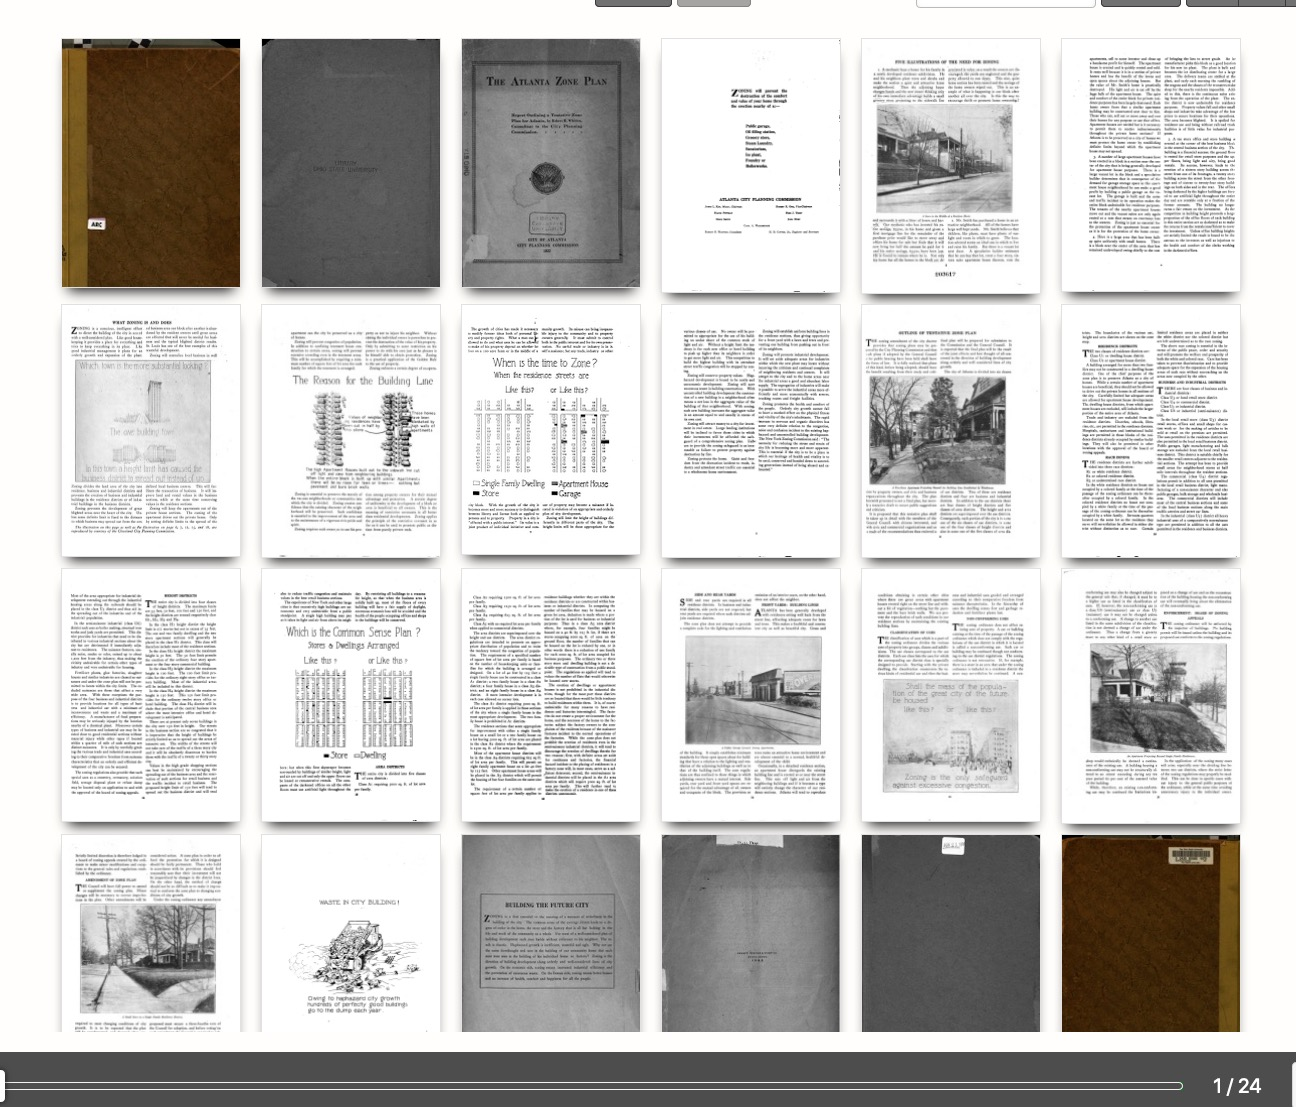 15 pages of text